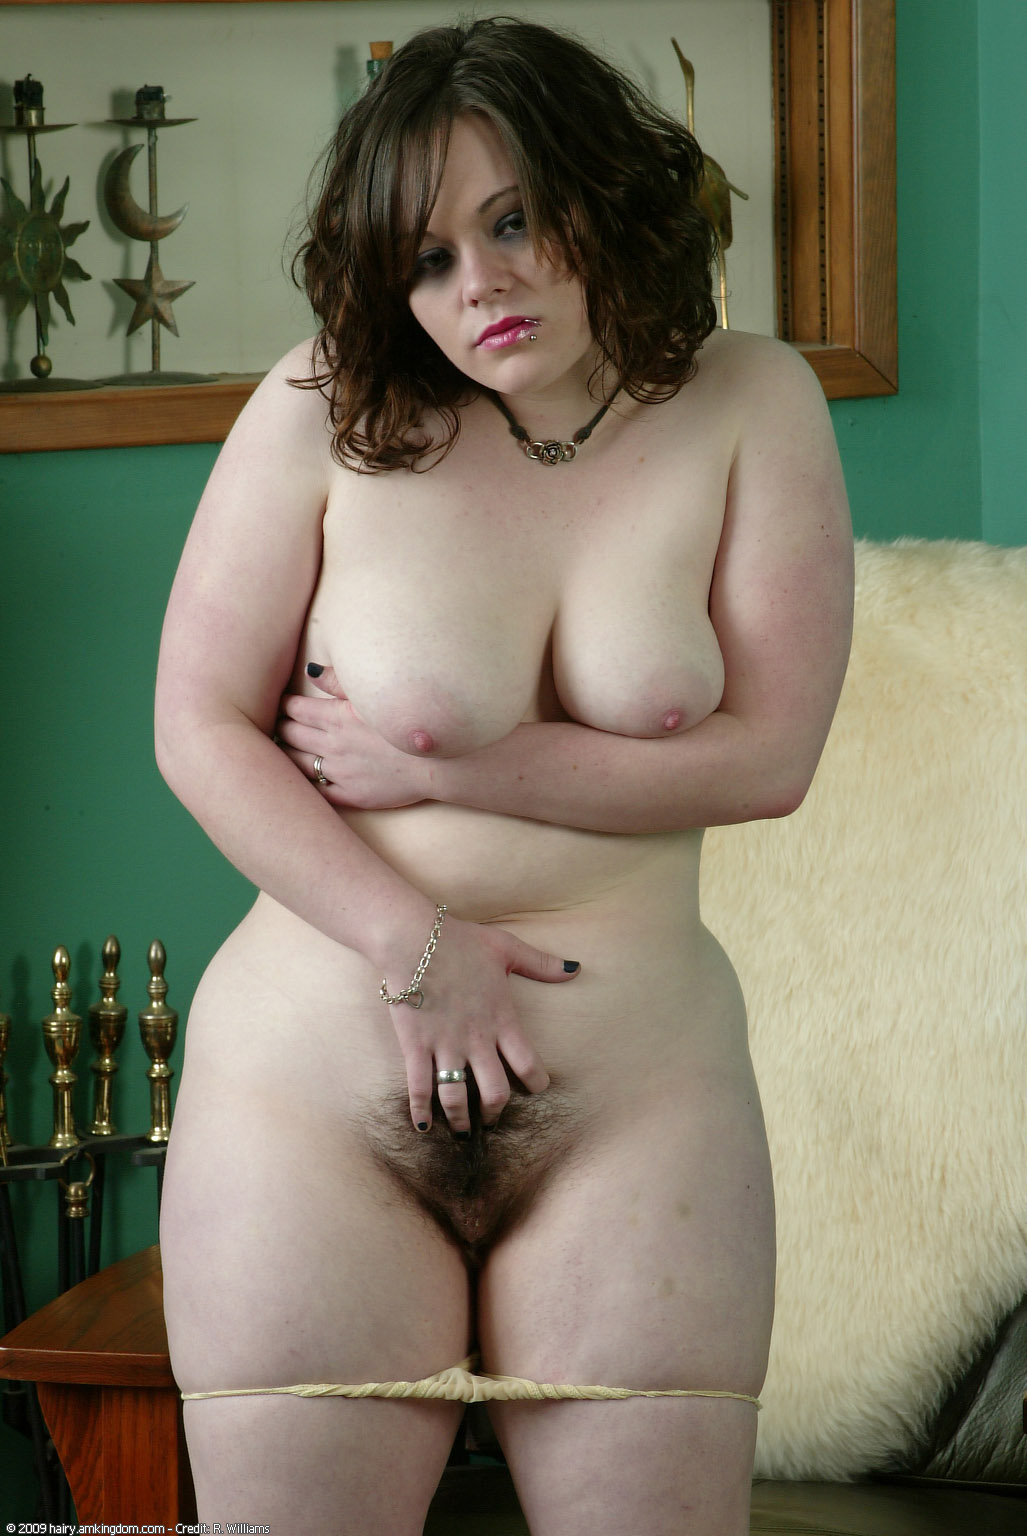 dark haired chubby girl naked